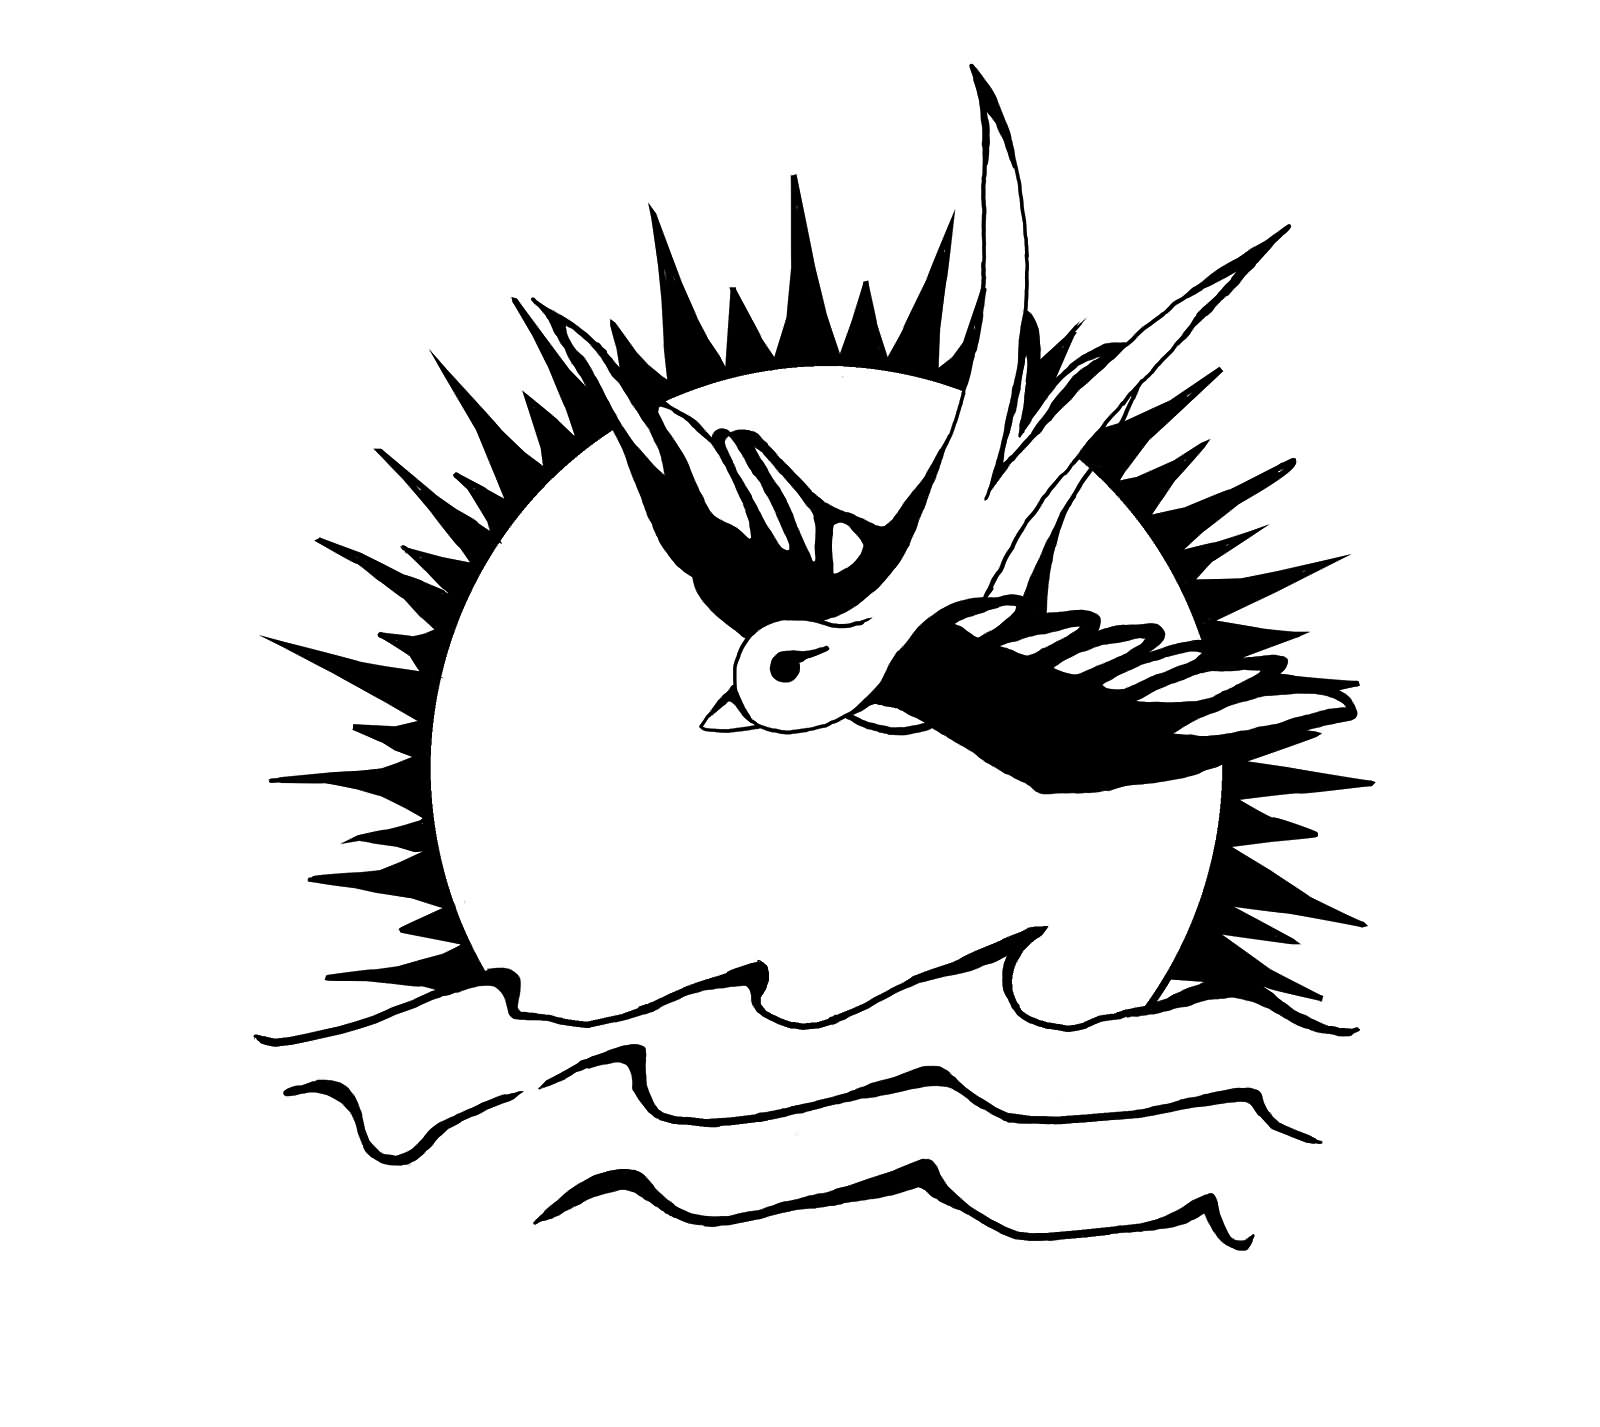 1600x1427 Black And White Sun And Flying Sparrow Tattoo Design By Pantherklaue